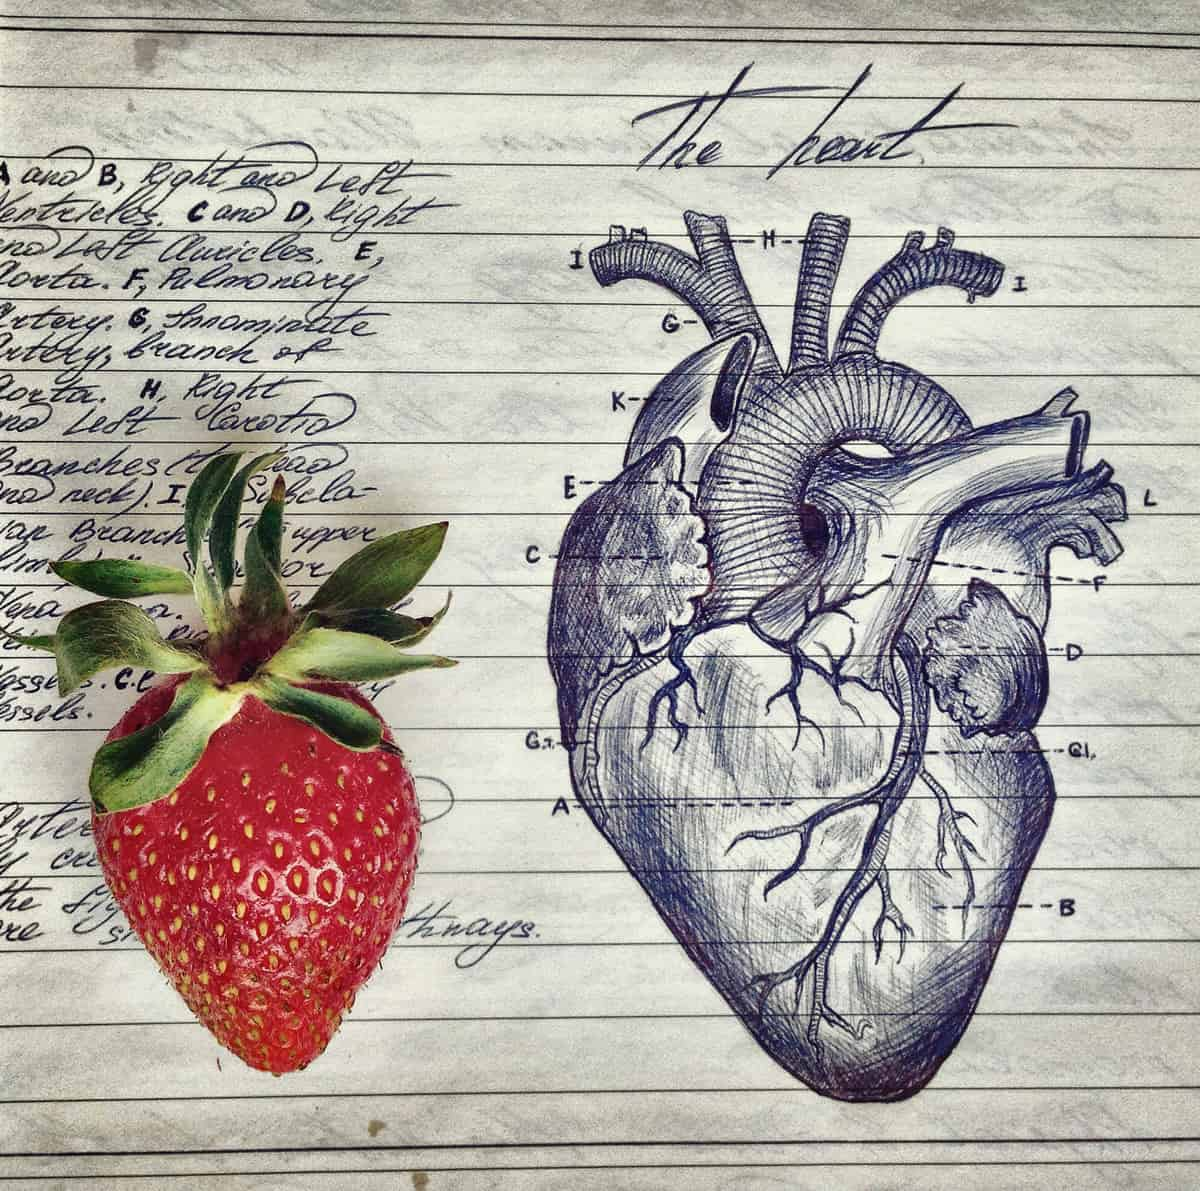 A photo of a large strawberry sitting next to an anatomical drawing of a heart in a biology notebook.